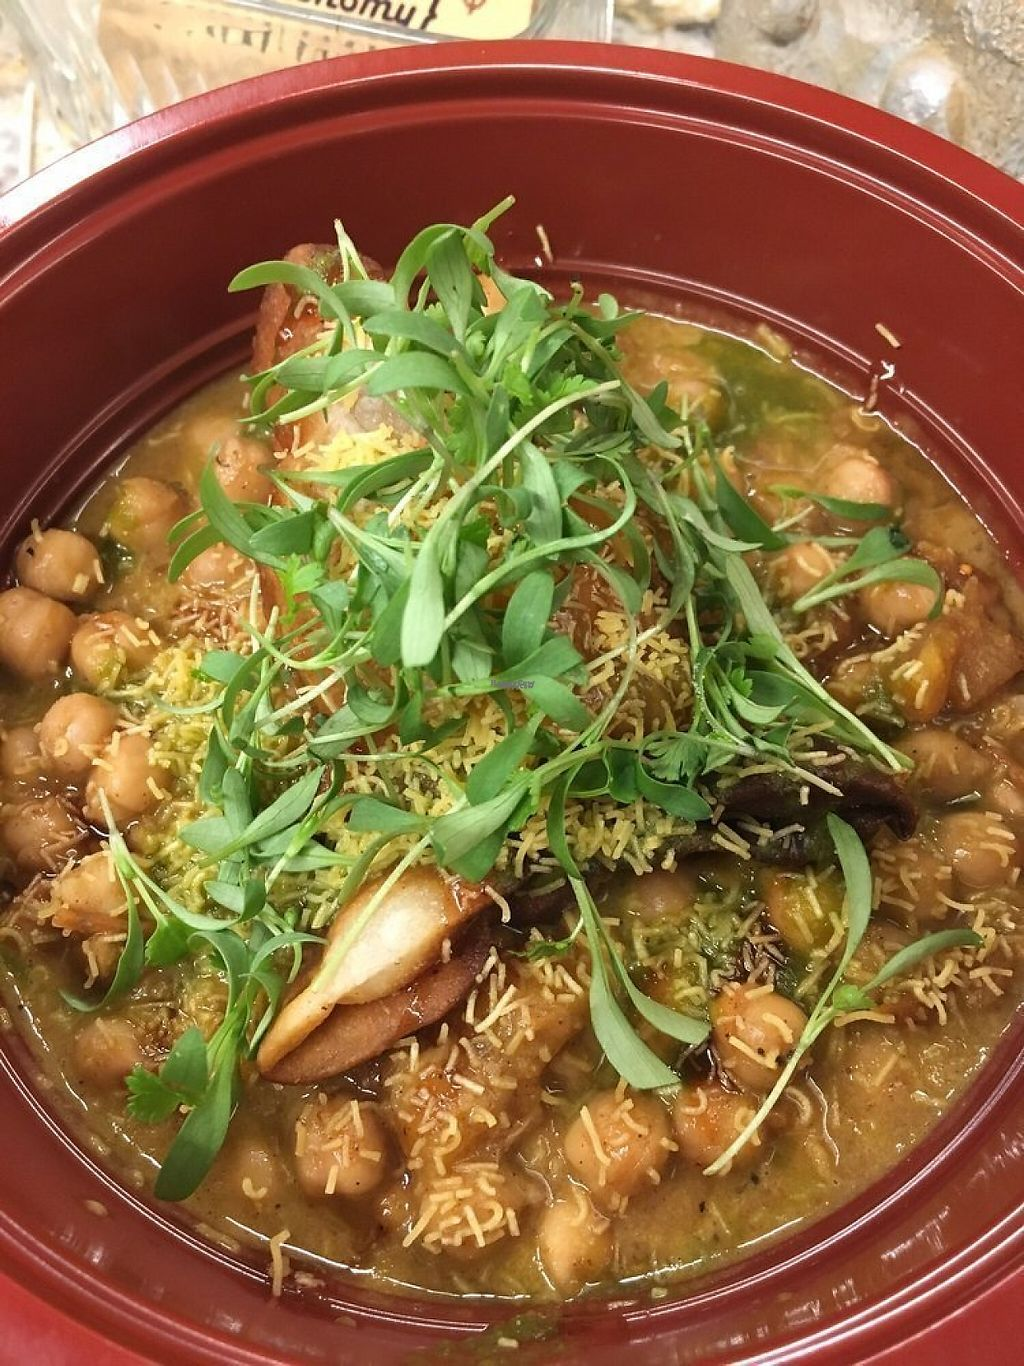 """Photo of L.A. Gastronomy  by <a href=""""/members/profile/lagastronomy"""">lagastronomy</a> <br/>The Culver City! <br/> January 20, 2017  - <a href='/contact/abuse/image/84517/213466'>Report</a>"""